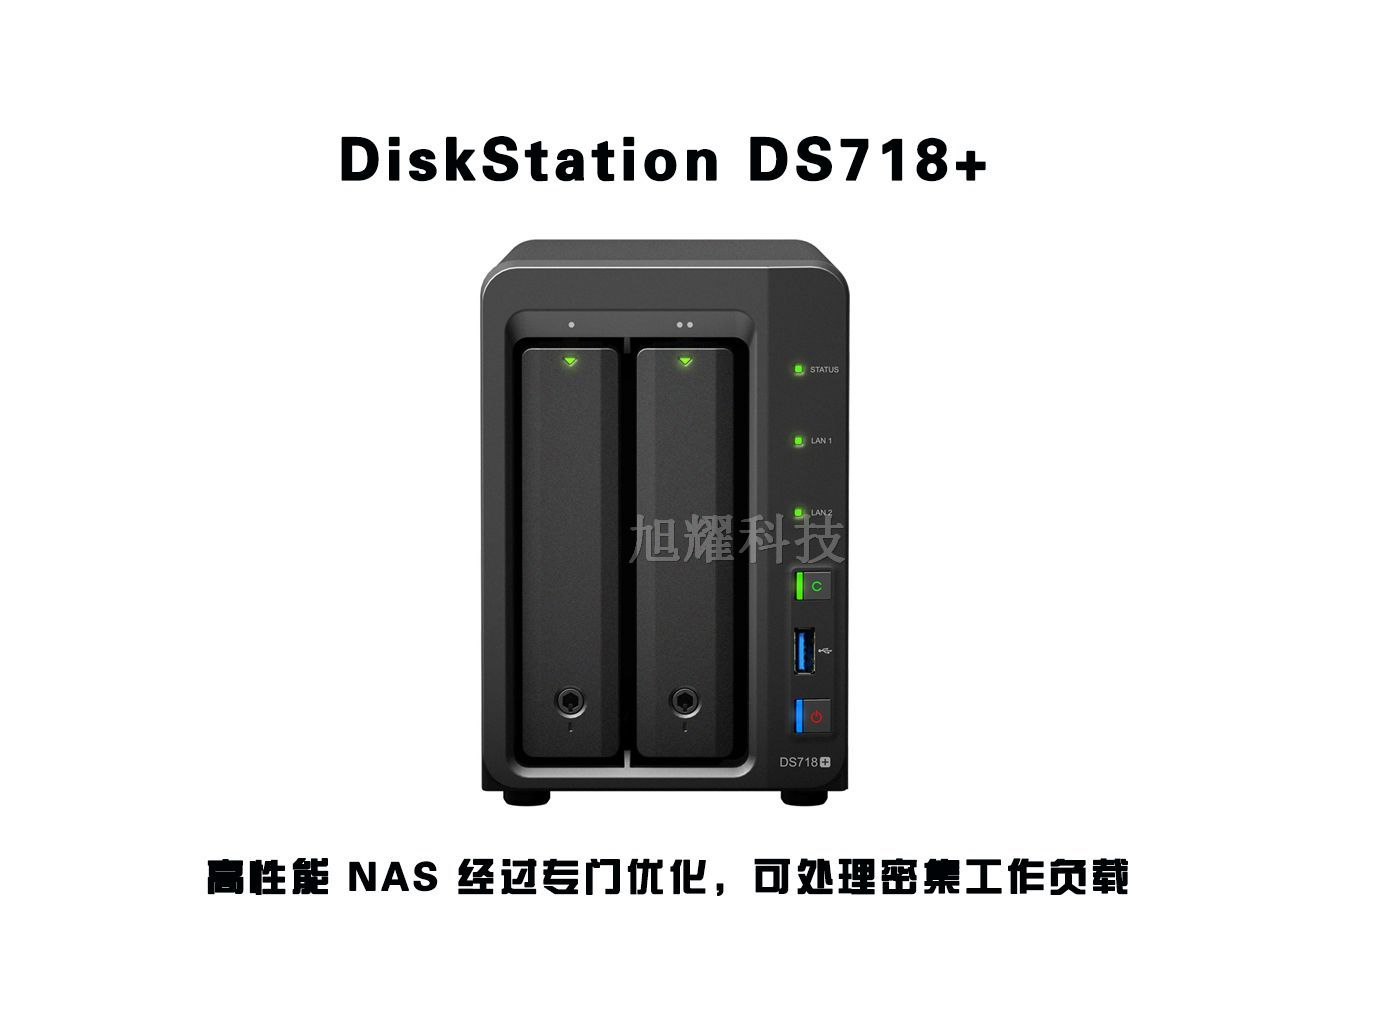 群晖 DiskStation DS718+